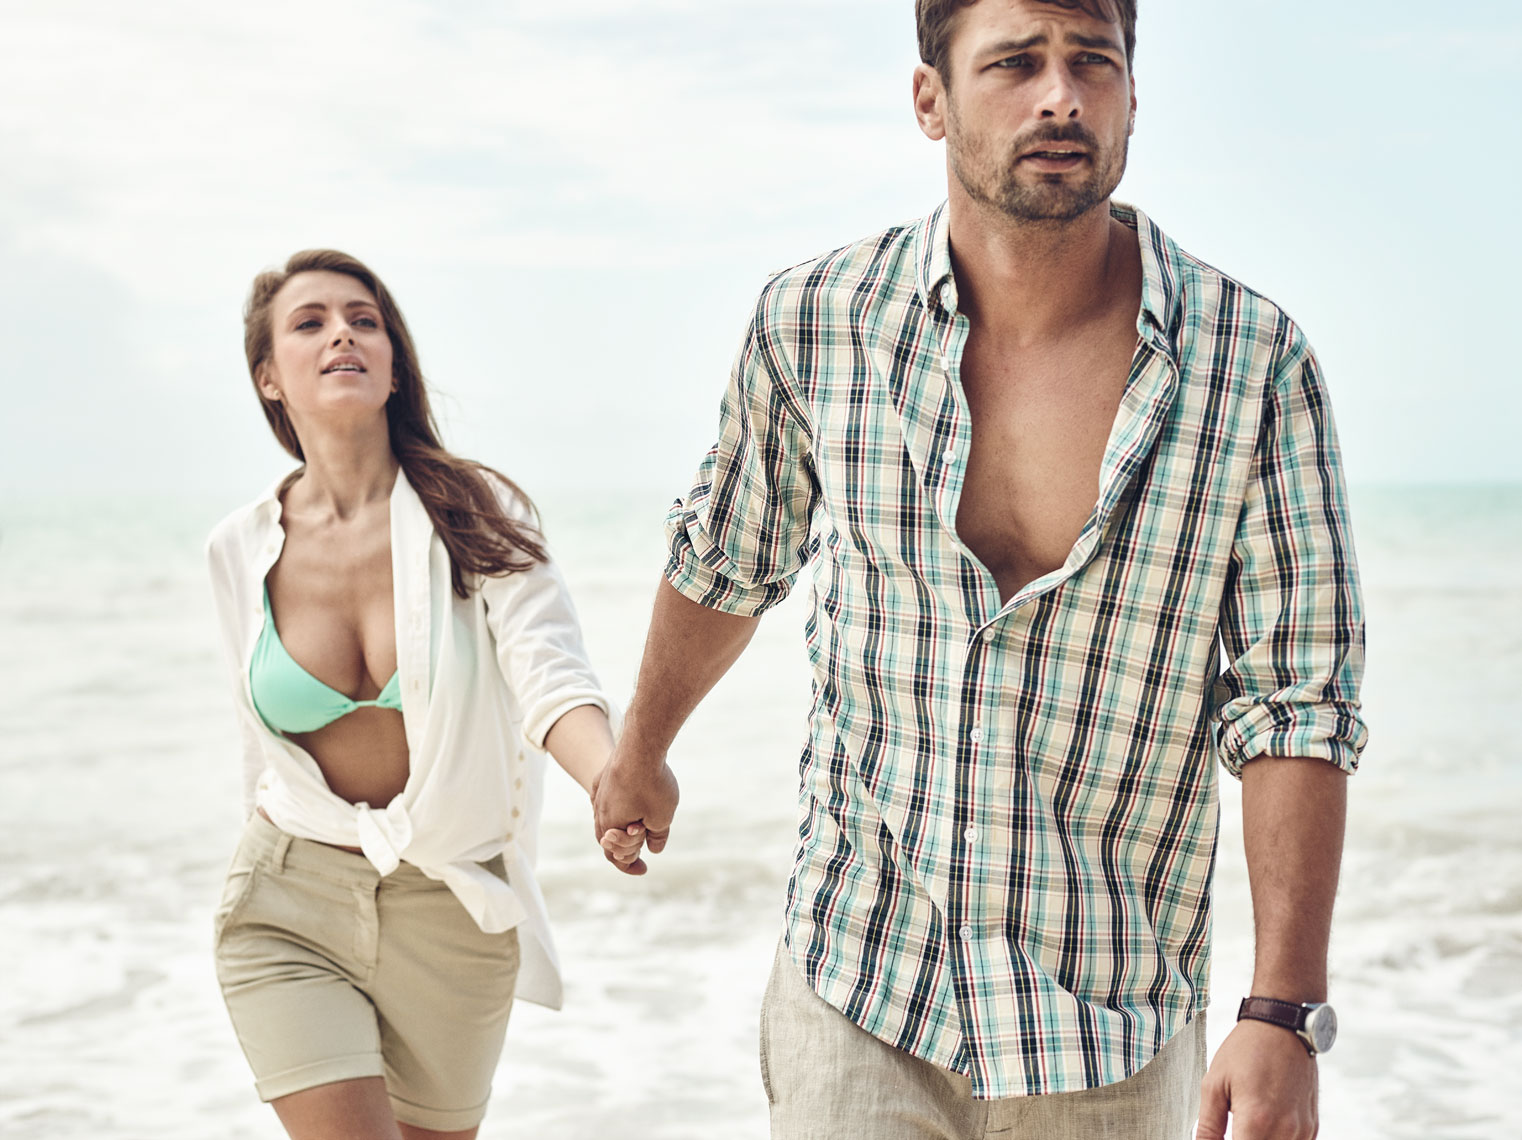 Fashion Lifestyle shoot in key west Florida with couple running on beach in stylish clothes For product branding